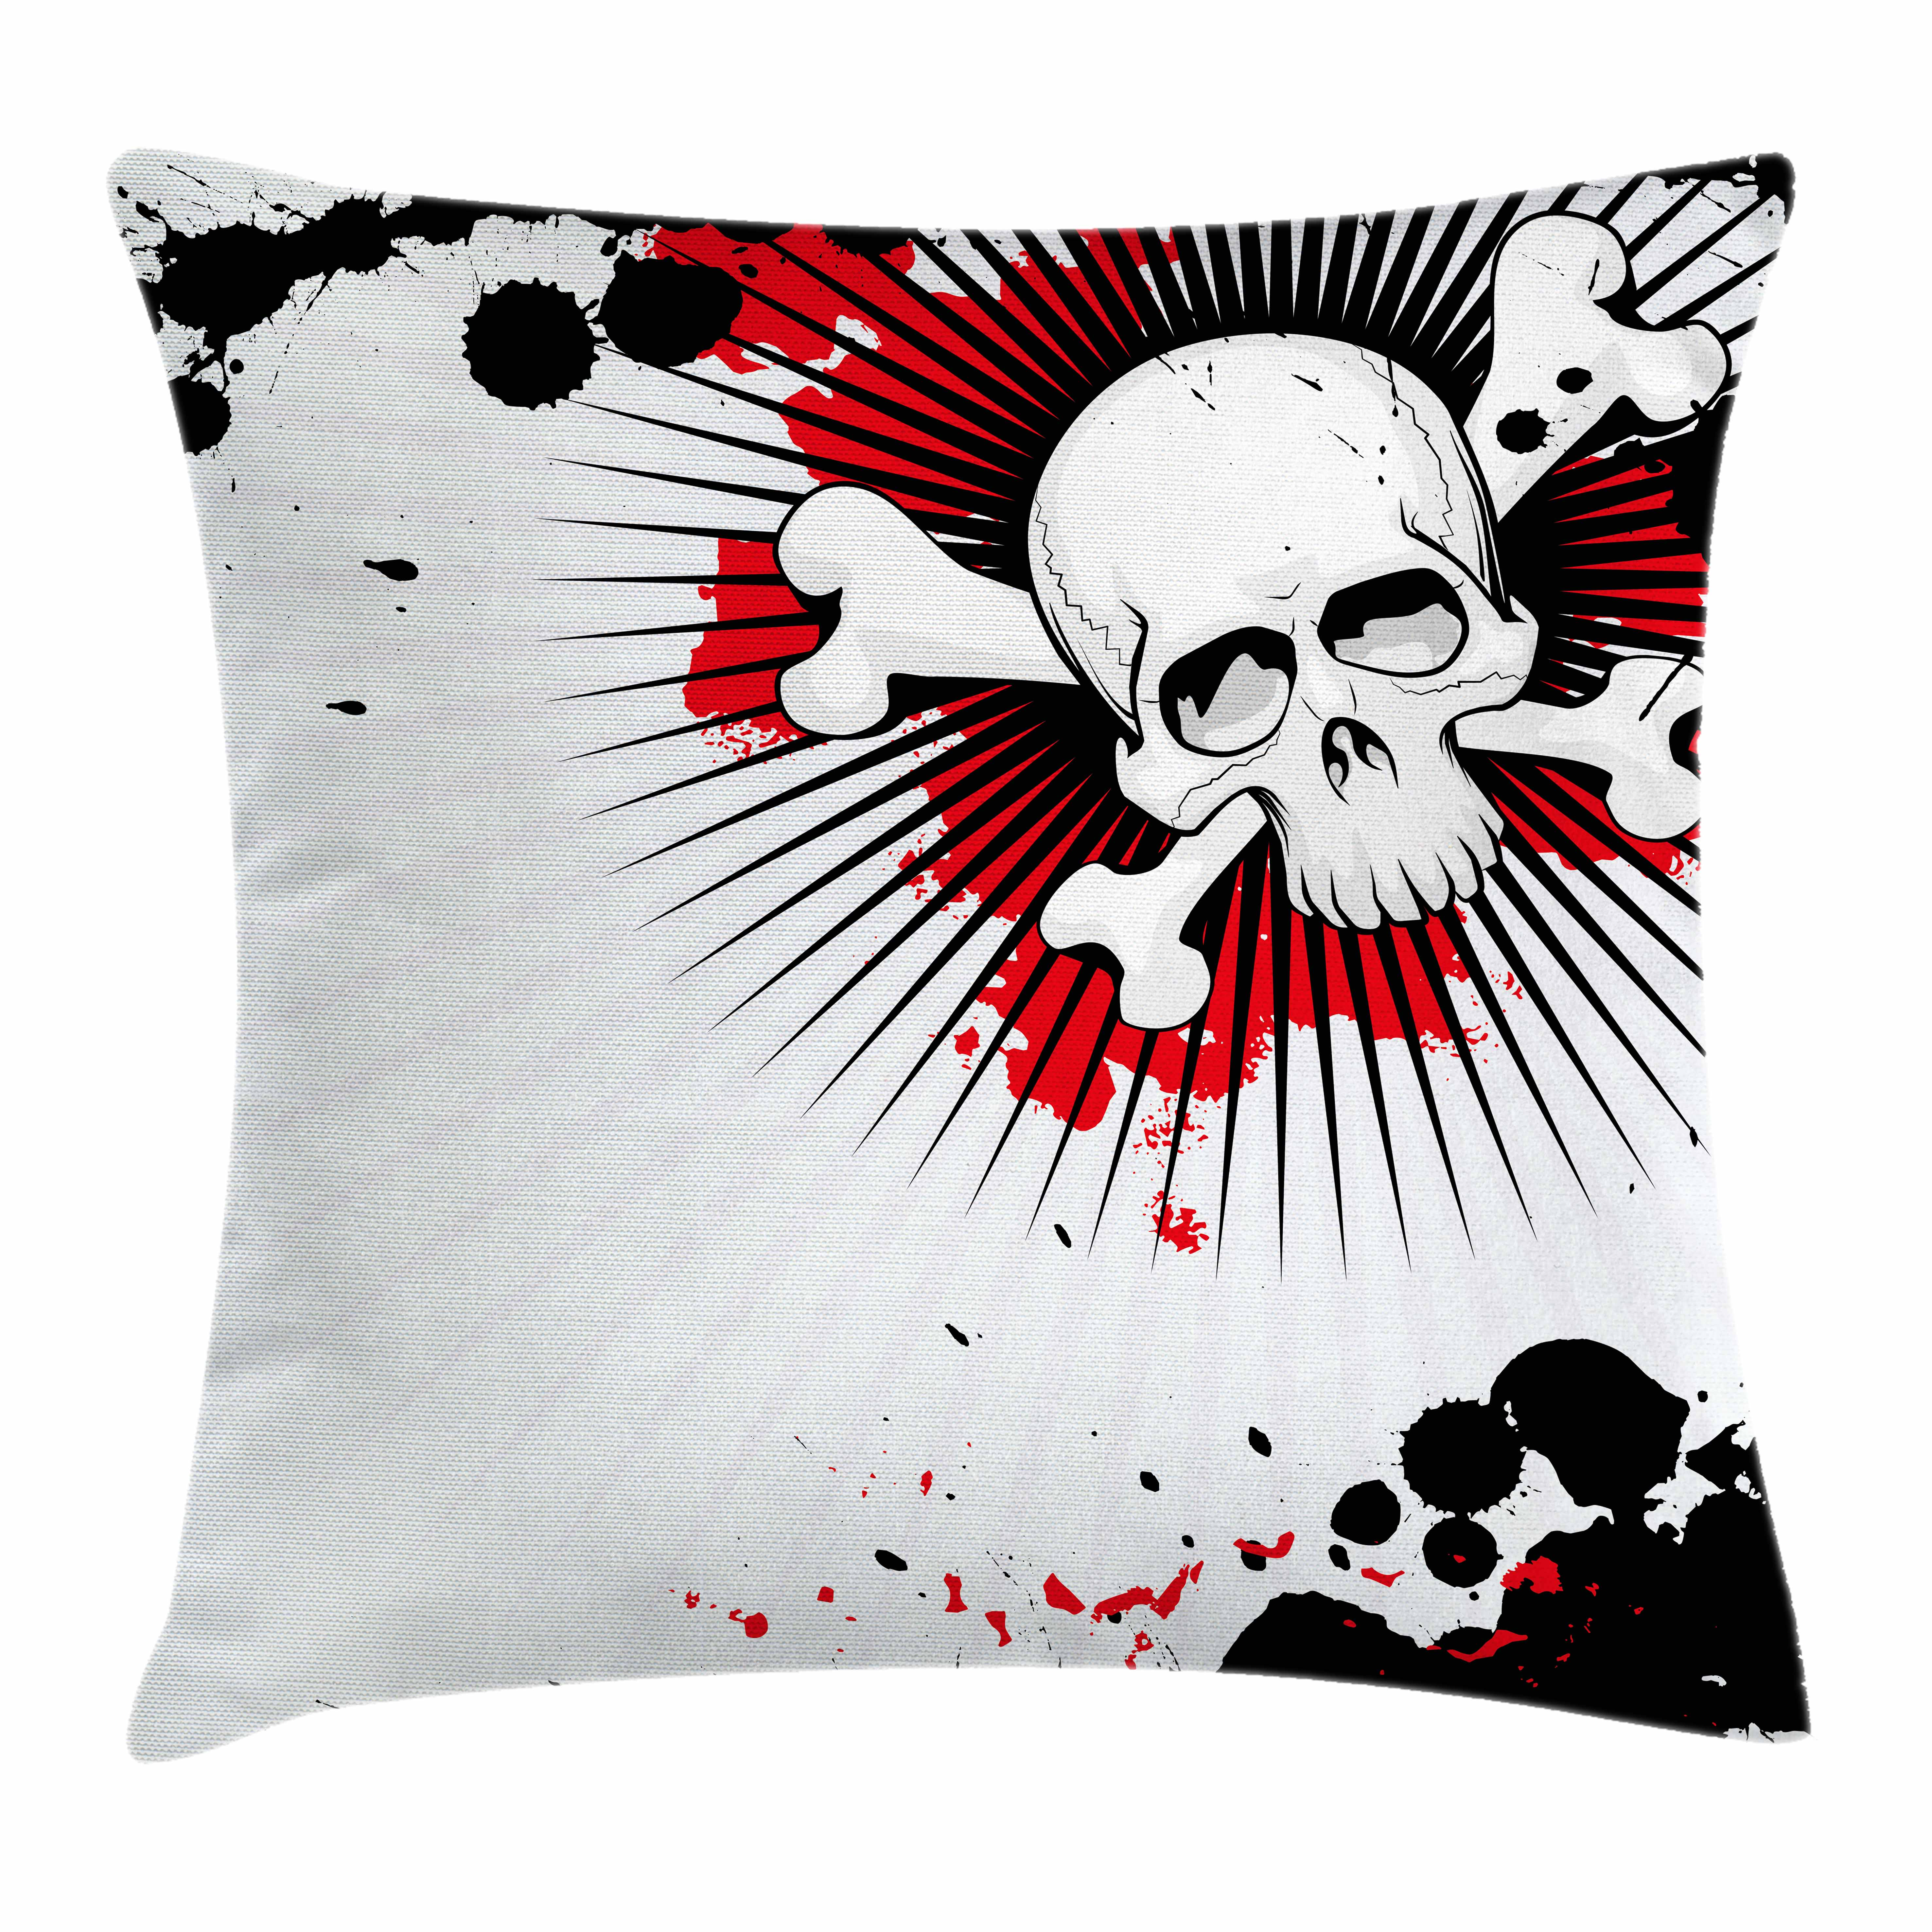 Halloween Throw Pillow Cushion Cover, Skull with Crossed Bones over Grunge Background Evil Scary Horror Graphic, Decorative Square Accent Pillow Case, 16 X 16 Inches, Pearl Red Black, by Ambesonne